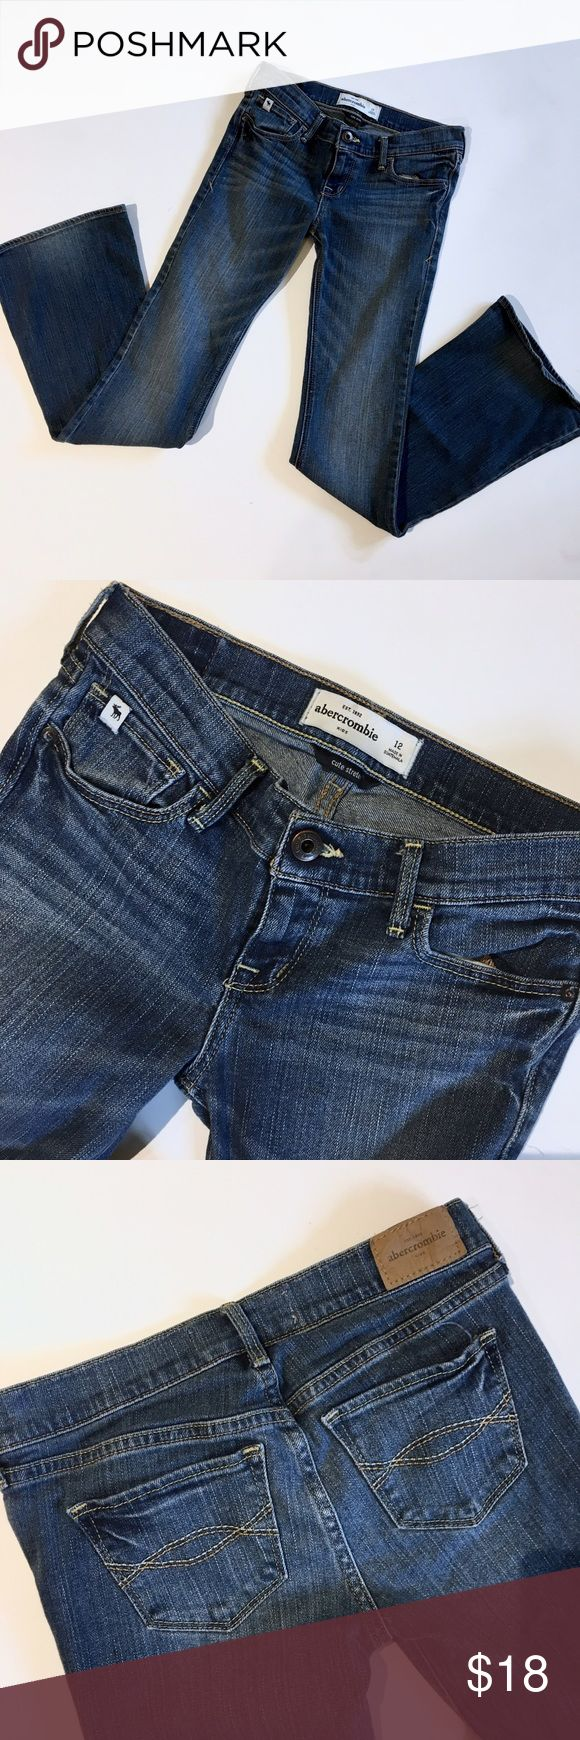 Abercrombie girls cute stretch flare jeans Excellent condition, no signs of wear. Add this to a bundle to save 15%. abercrombie kids Bottoms Jeans